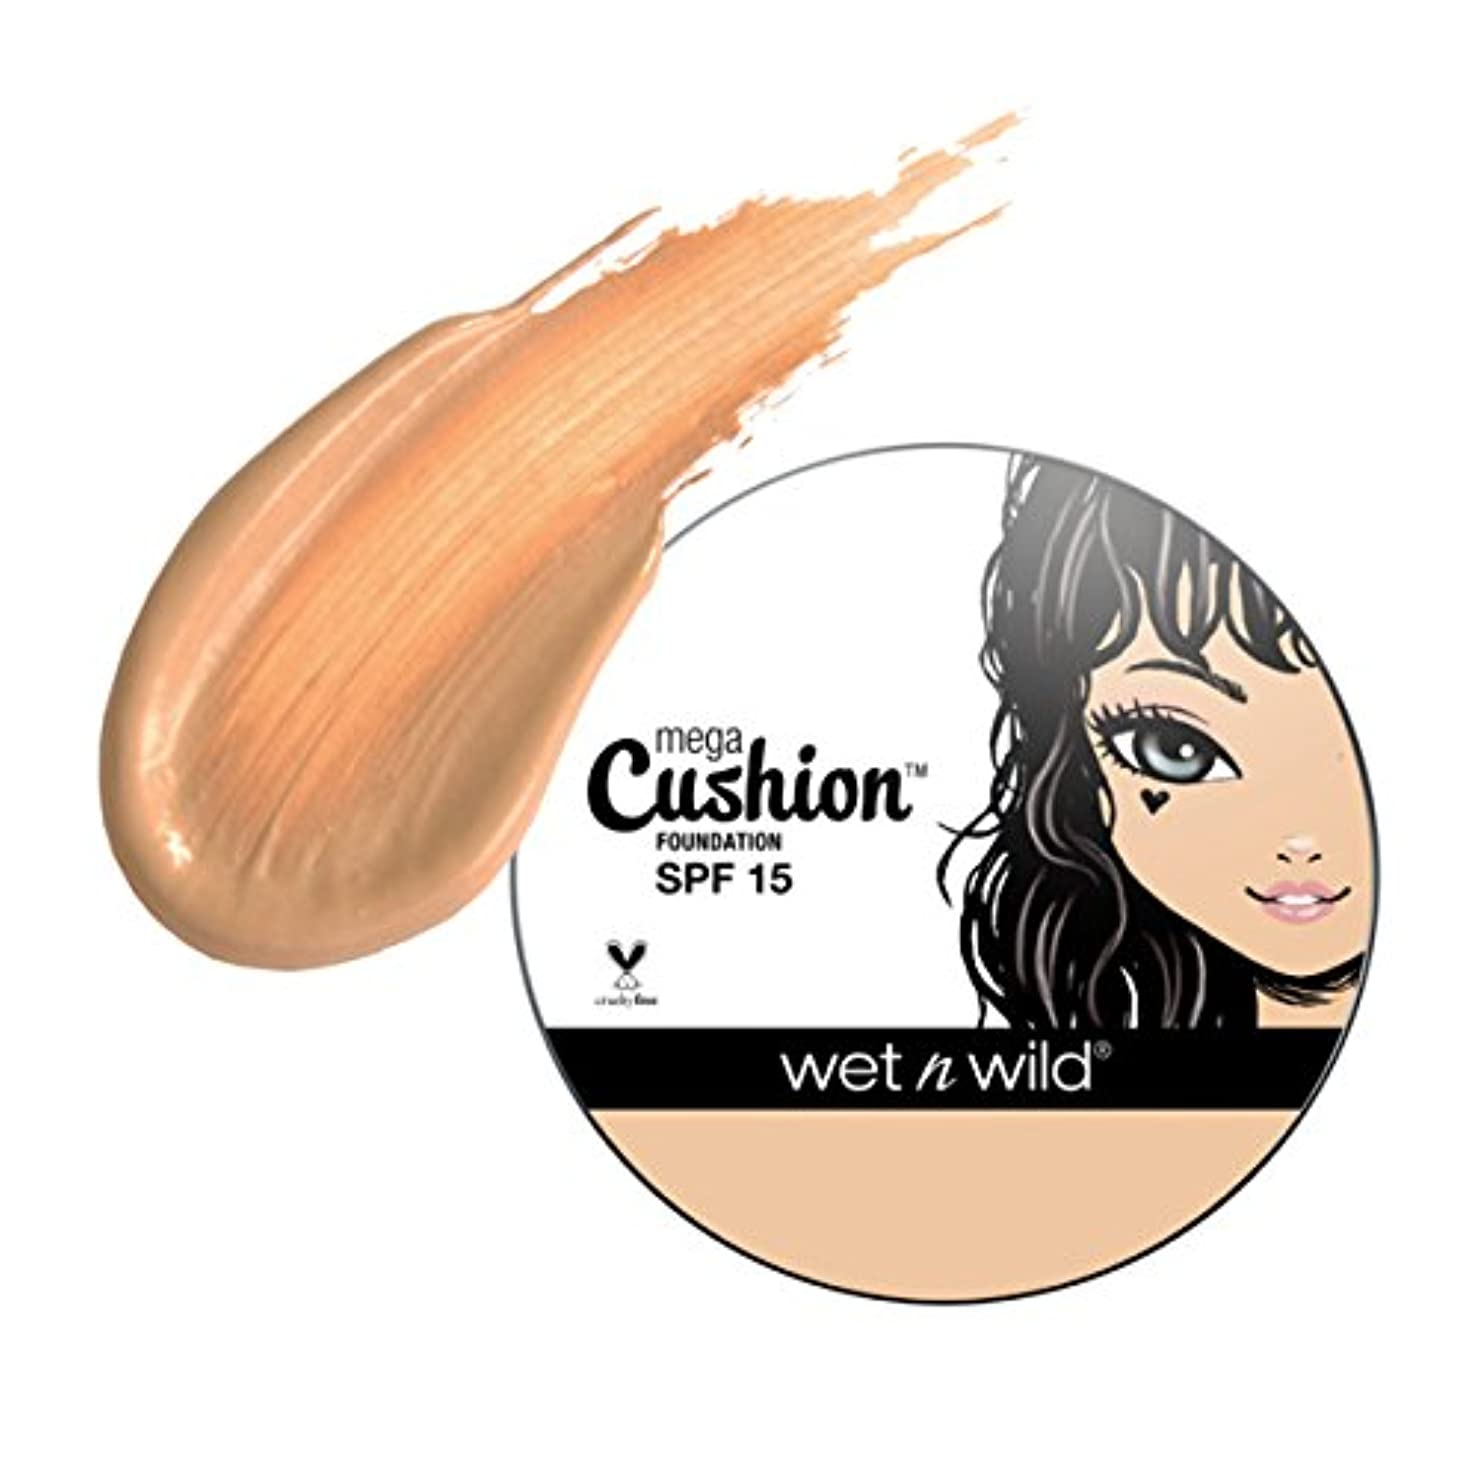 開発アリ幻滅(3 Pack) WET N WILD MegaCushion Foundation SPF 15 - Buff Beige (並行輸入品)